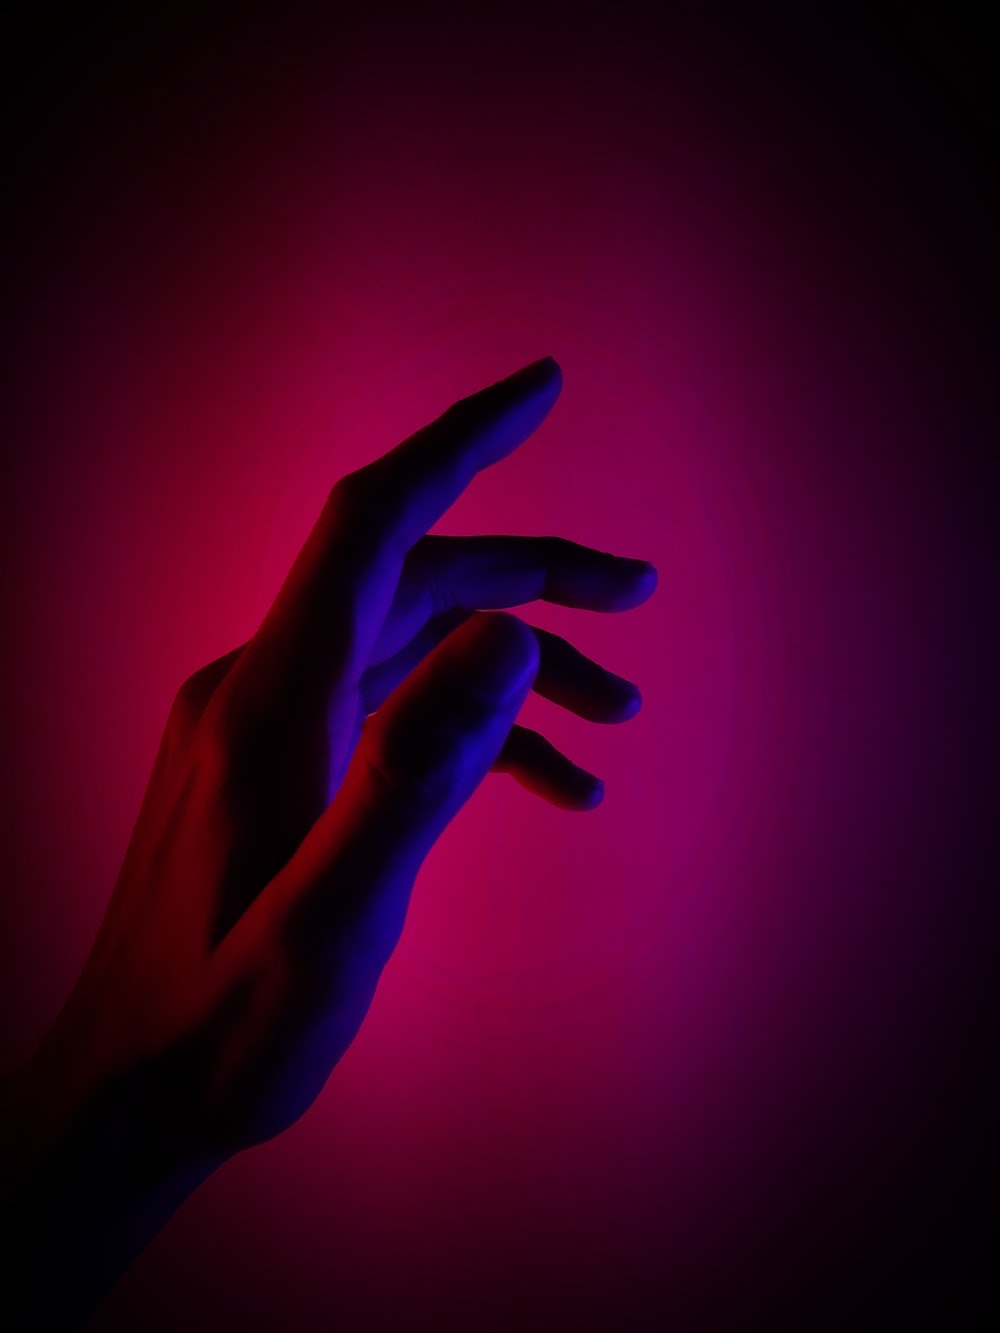 A hand reaching out under lighting in the colors of the bisexual flag: purple, blue, and magenta. Photo courtesy of Nitish Goswami on Unsplash.